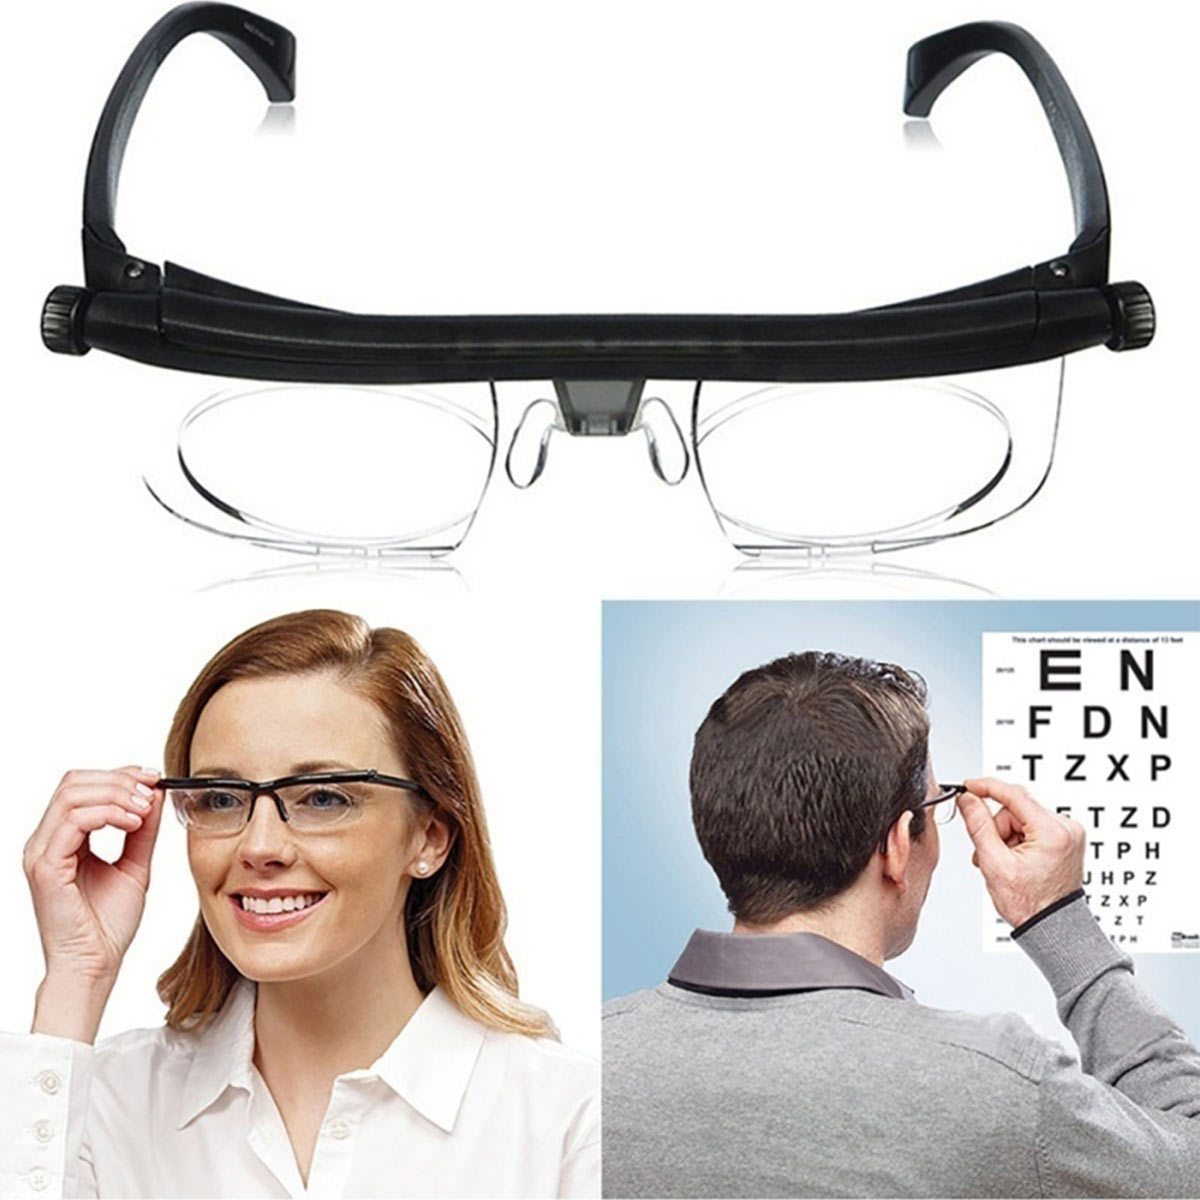 Dial Vision - The World's First Adjustable Eyeglasses – Aquatrends